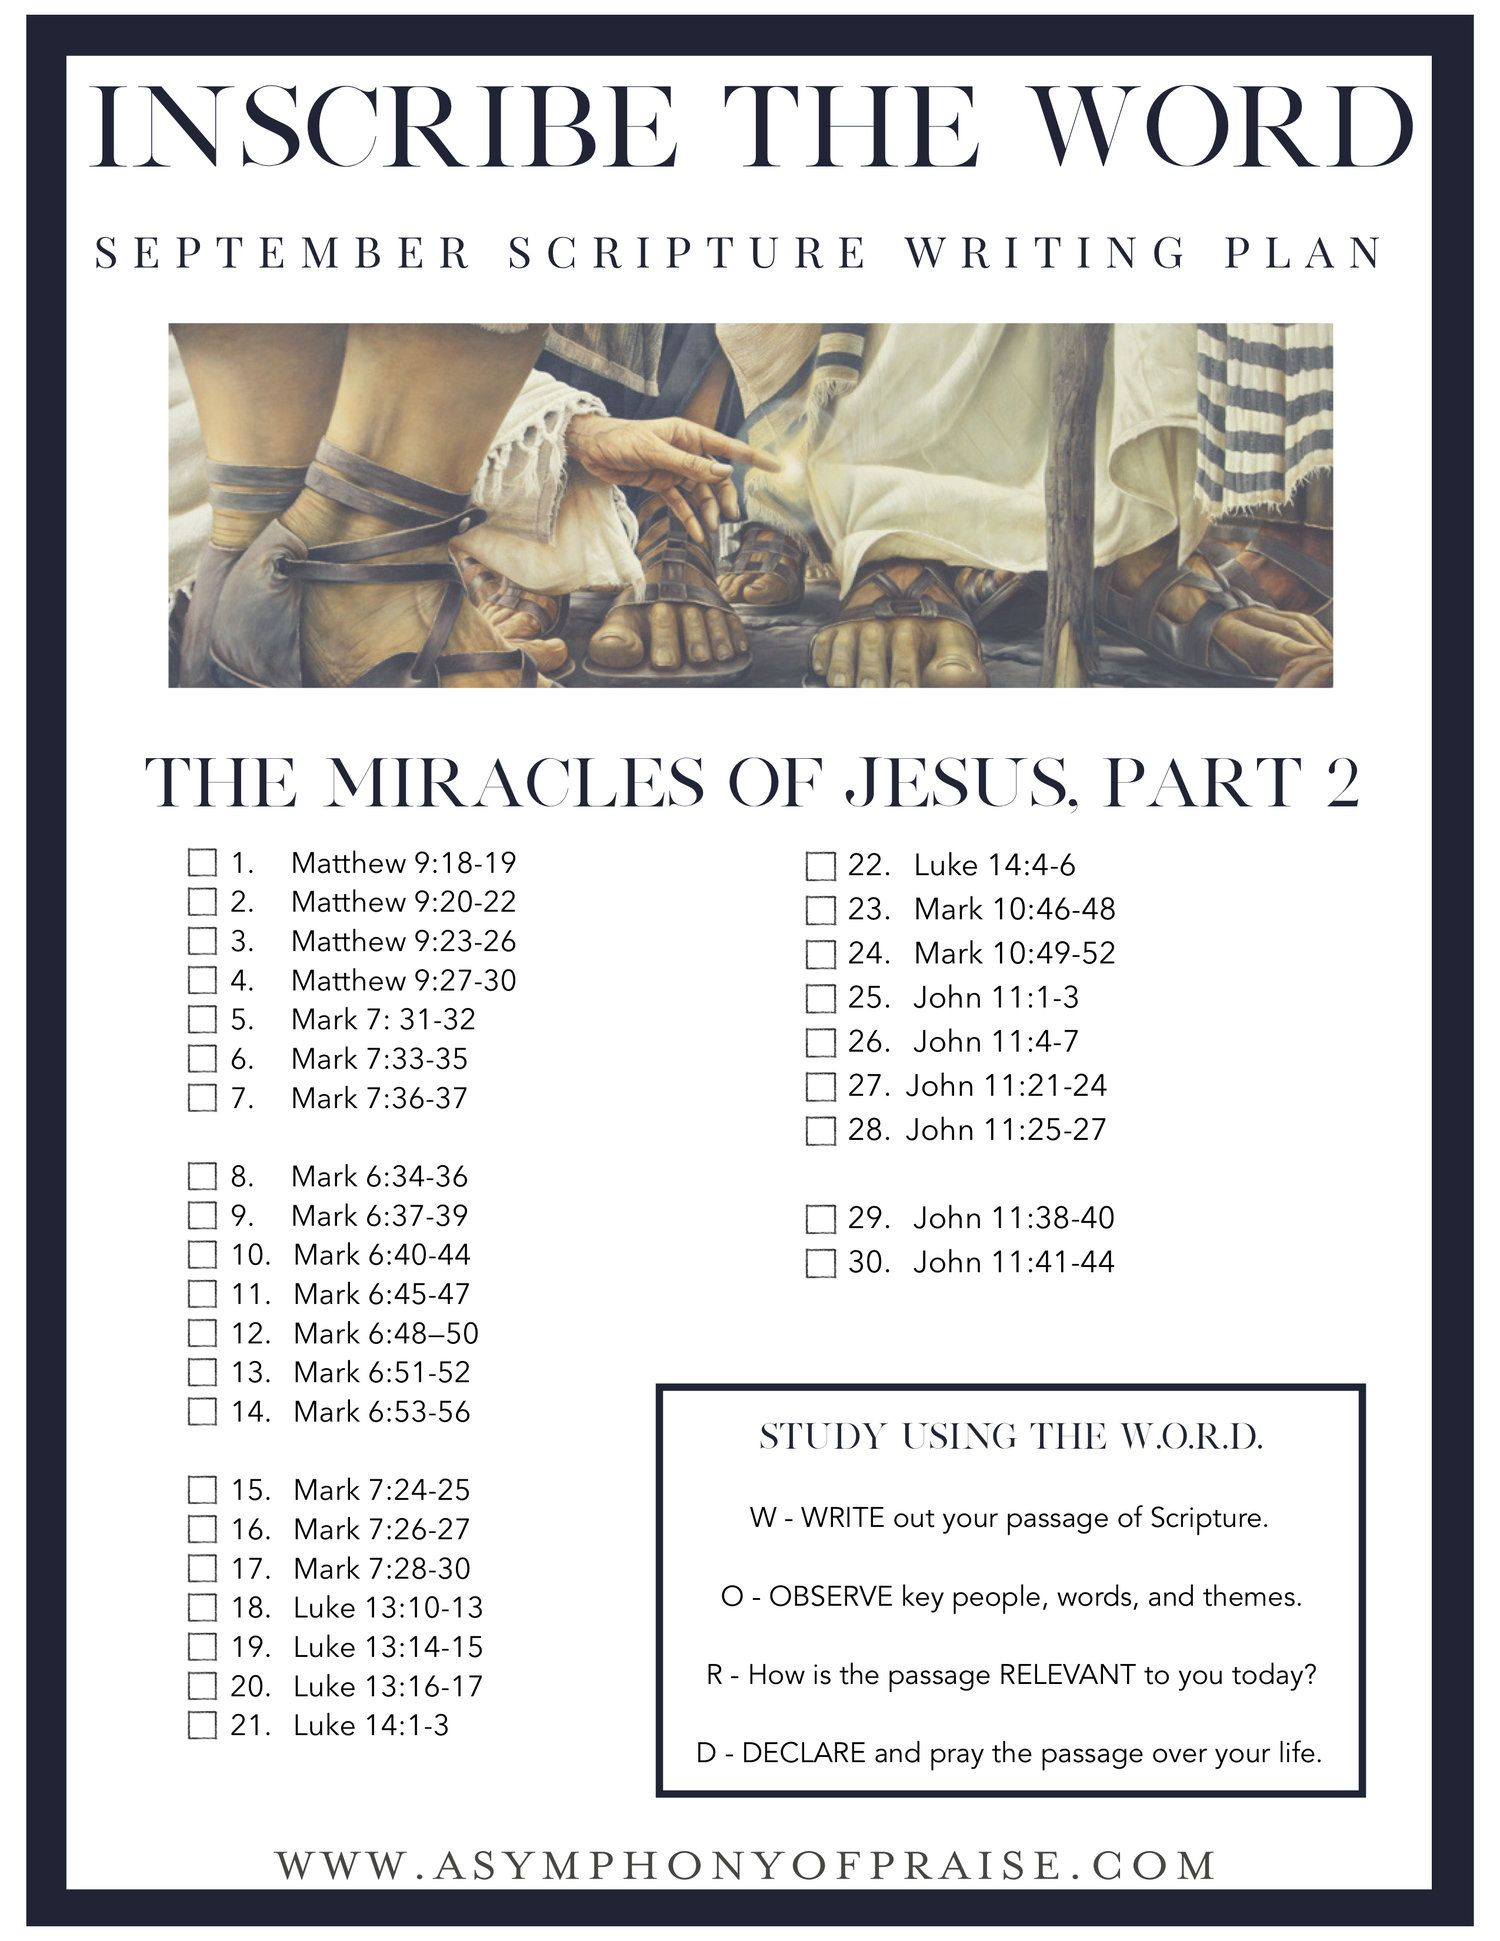 Inscribe the Word * September Scripture Writing Plan | Bible Study